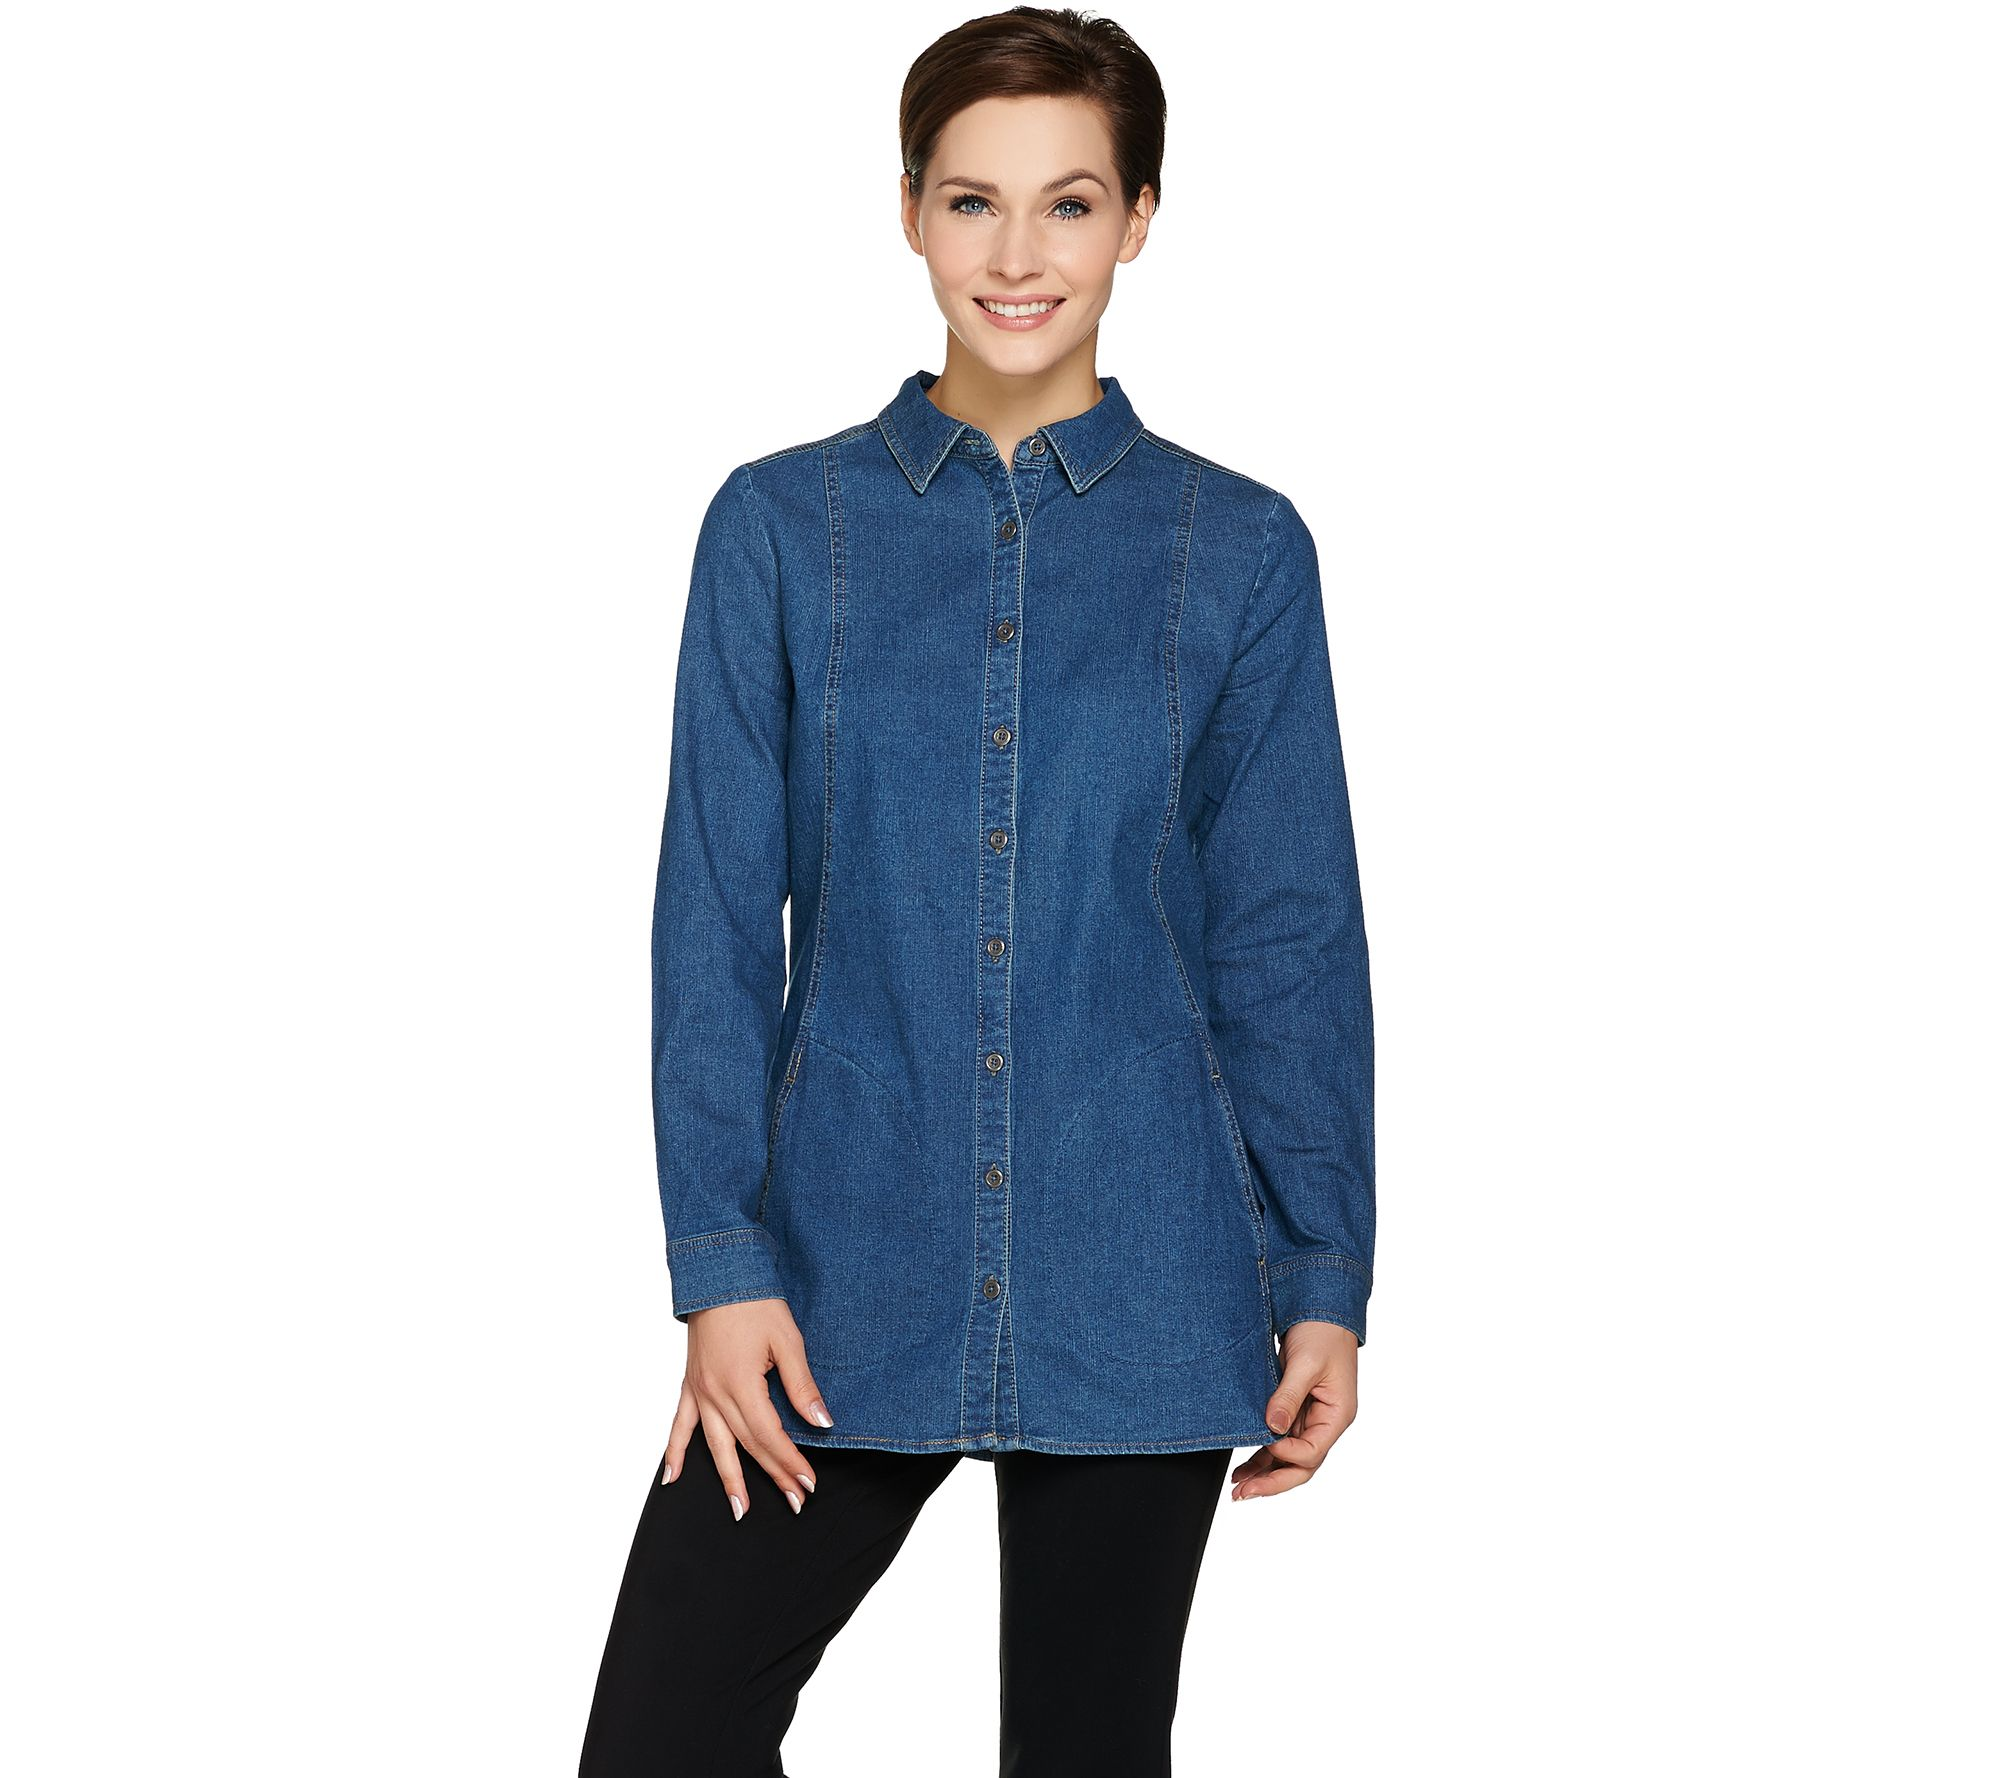 Denim is a true wardrobe staple—it never seems to go out of style! This favorite fabric comes in a variety of styles, including pants, shirts, dresses, jackets, tops, and more. Shop women's denim from top brands and designers at QVC. Find your perfect fit in our selection of jeans for every figure.